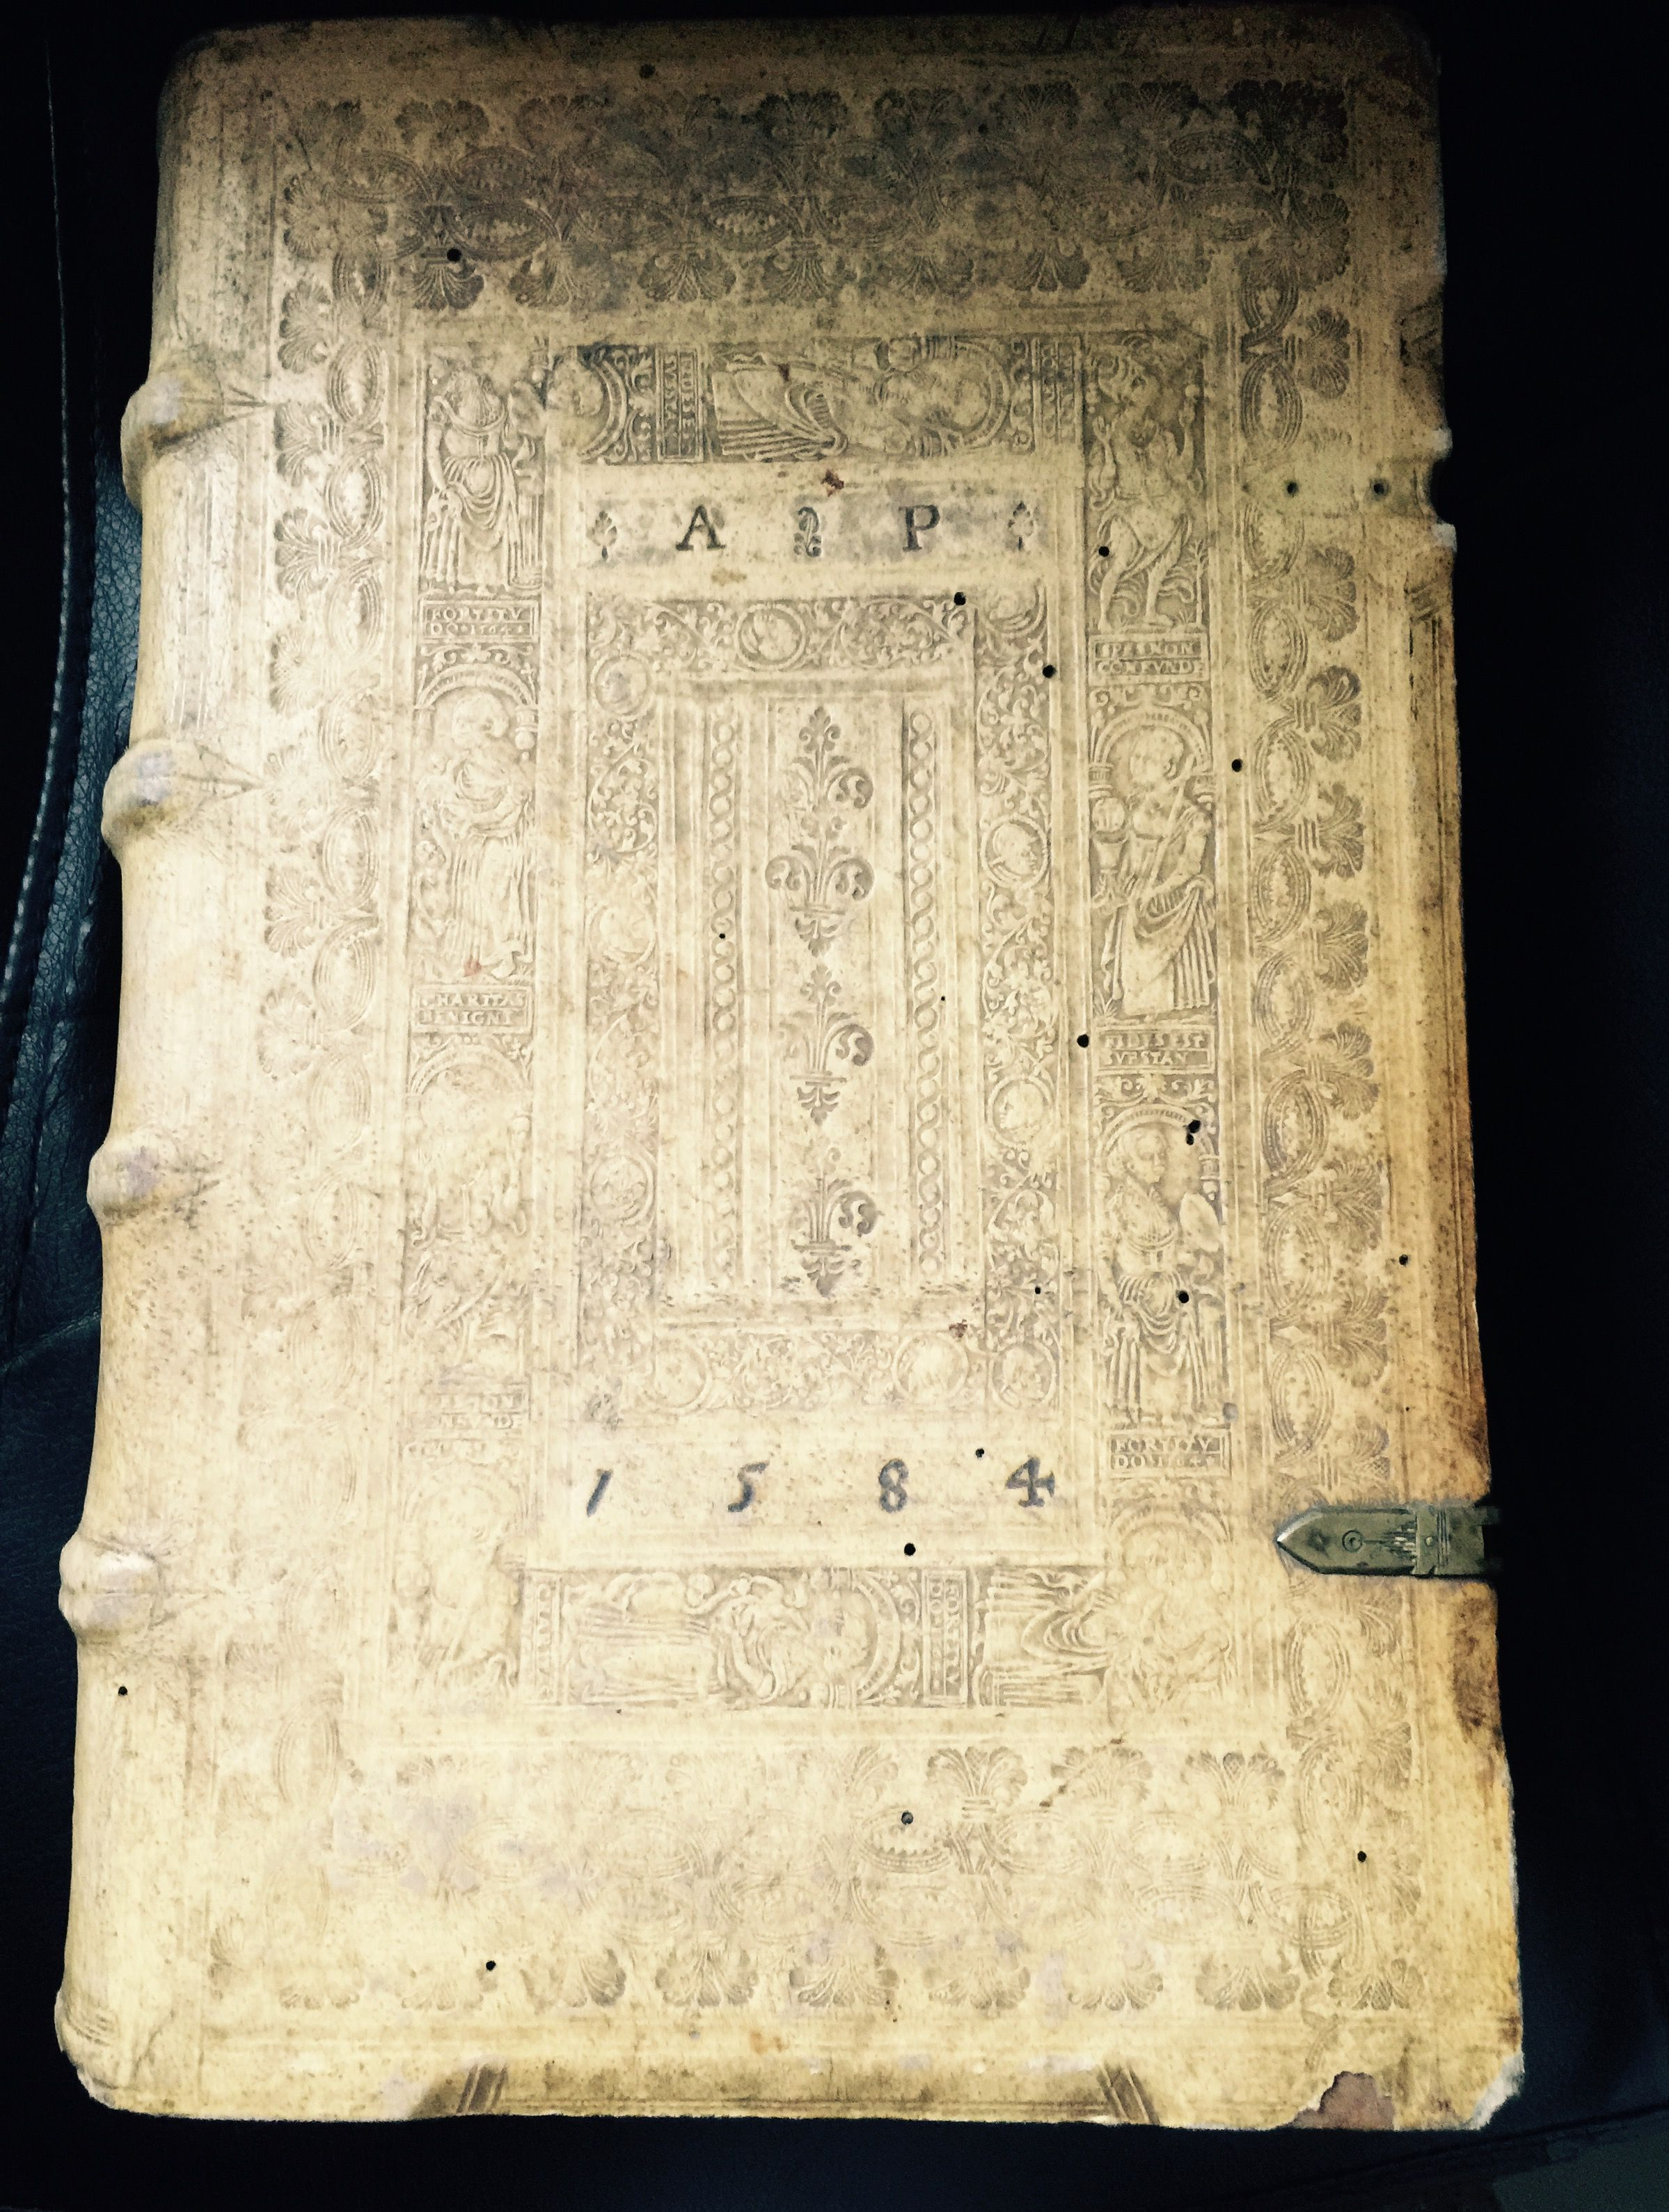 My personal collection- printed in 1575 in German, a book on the life of Christ bound in gorgeous stamped vellum...